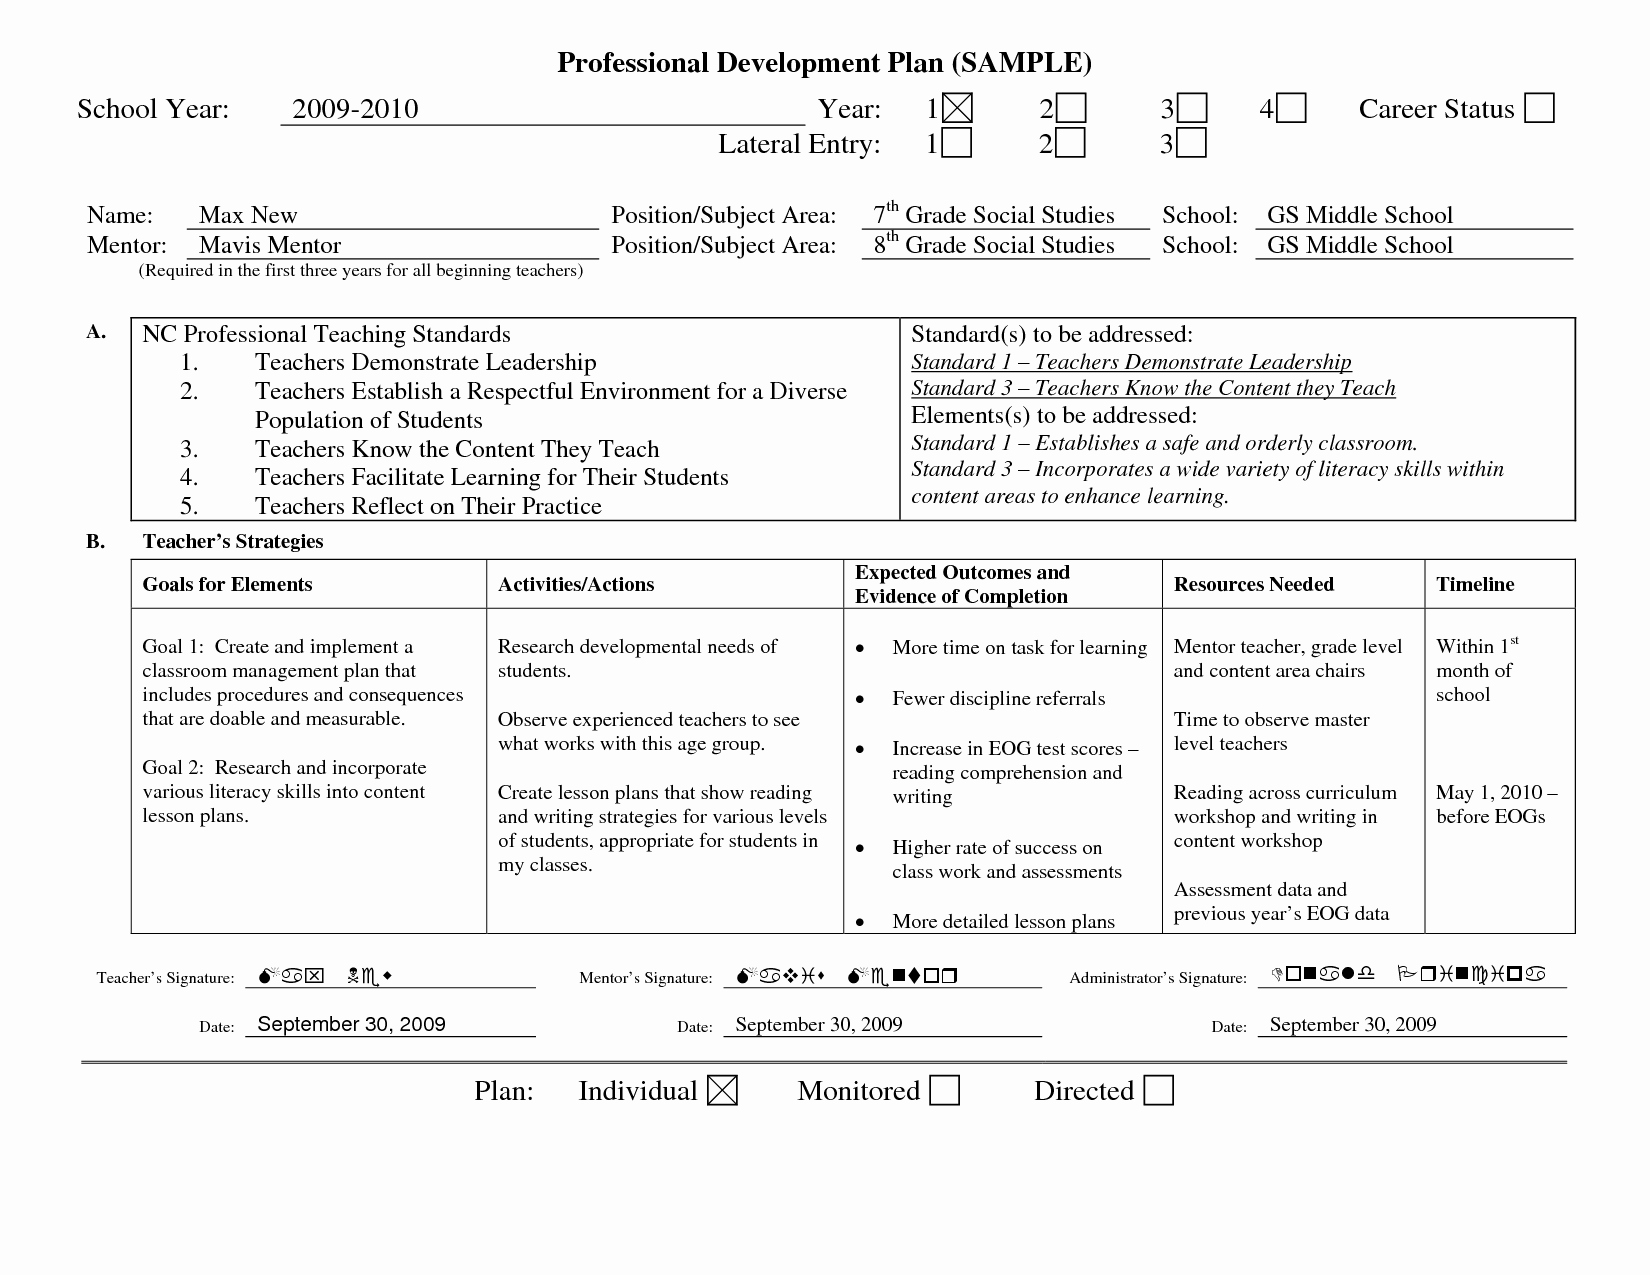 Professional Growth Plan Templates Awesome Professional Learning Plan Examples Google Search